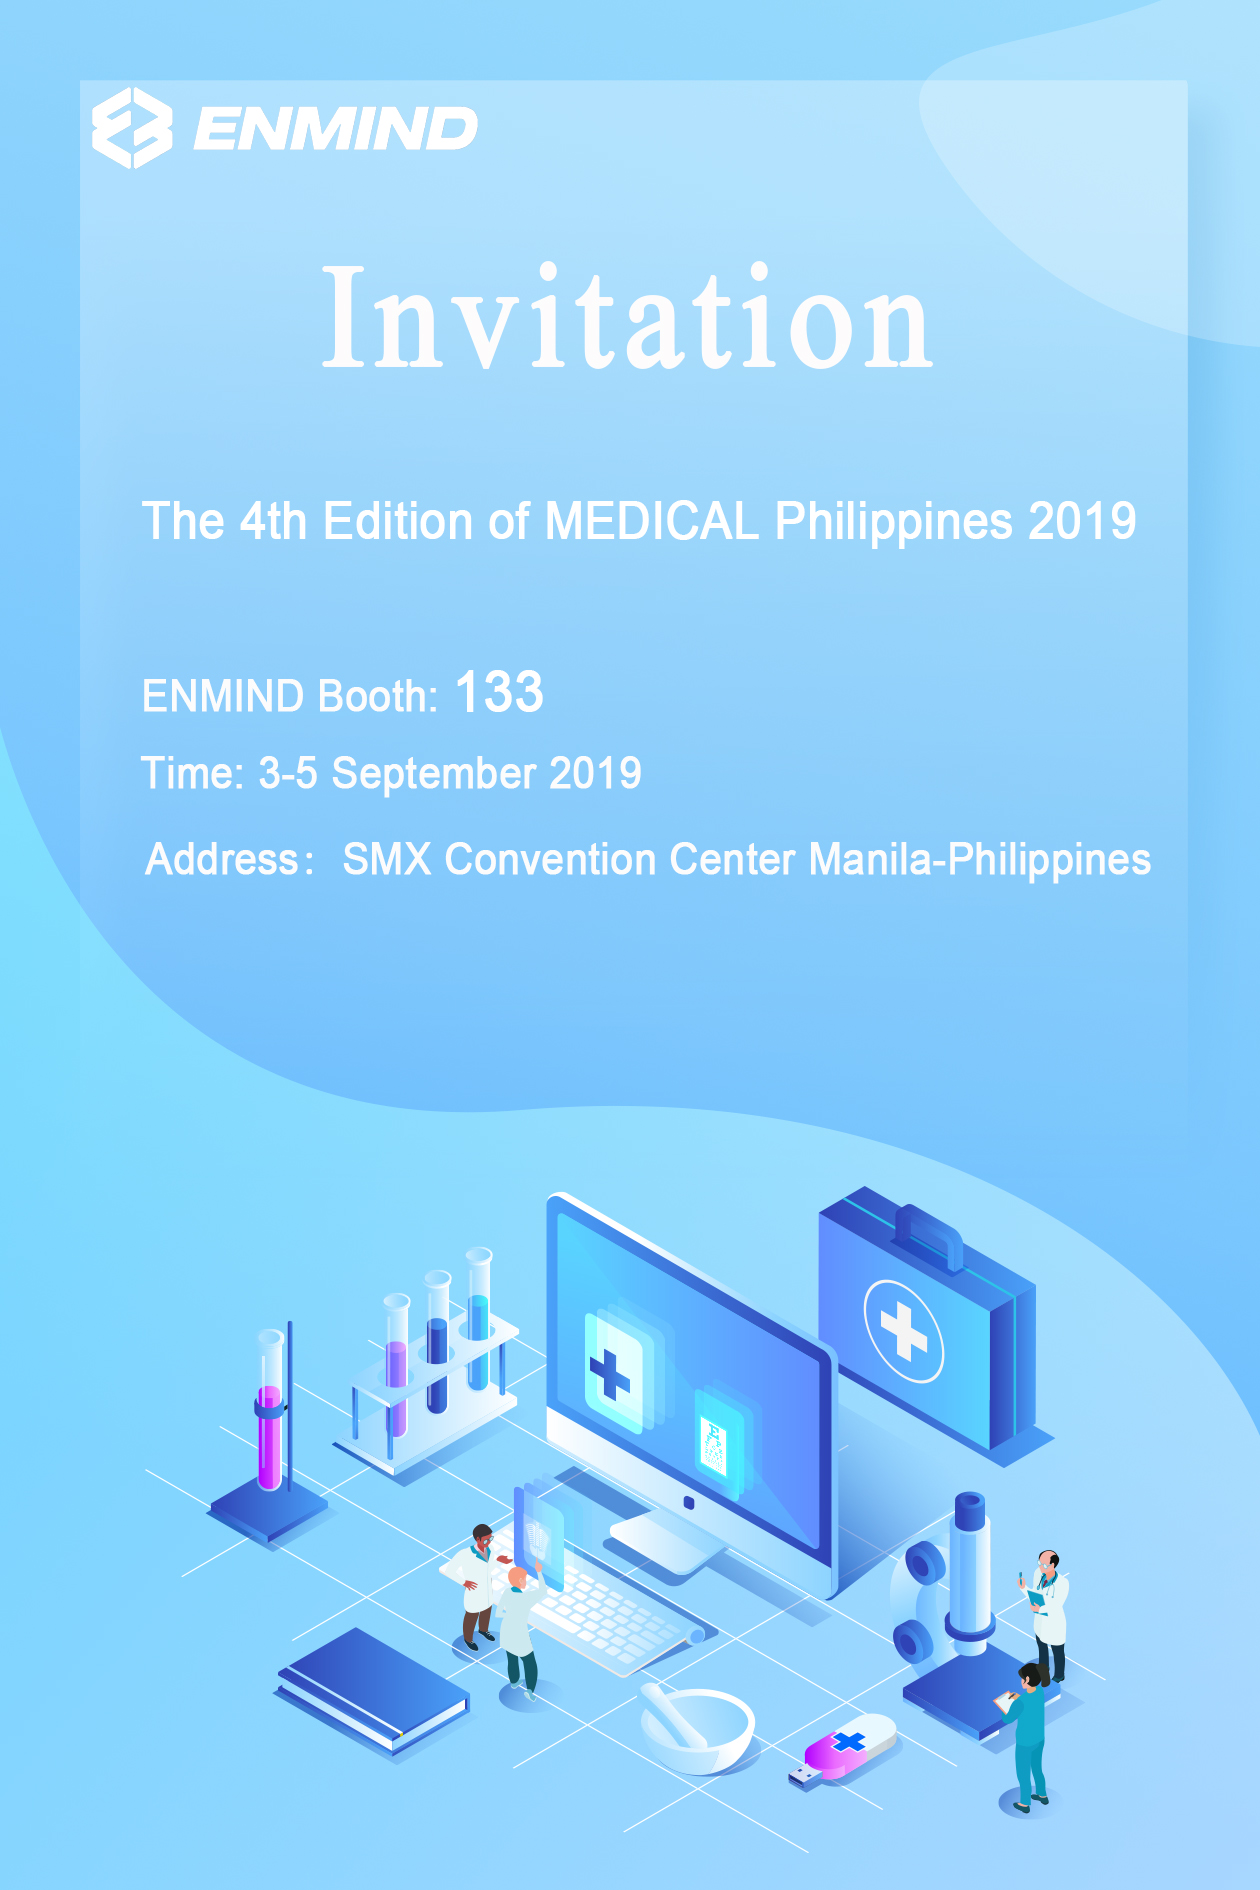 The MEDICAL Philippines 2019 Invitation